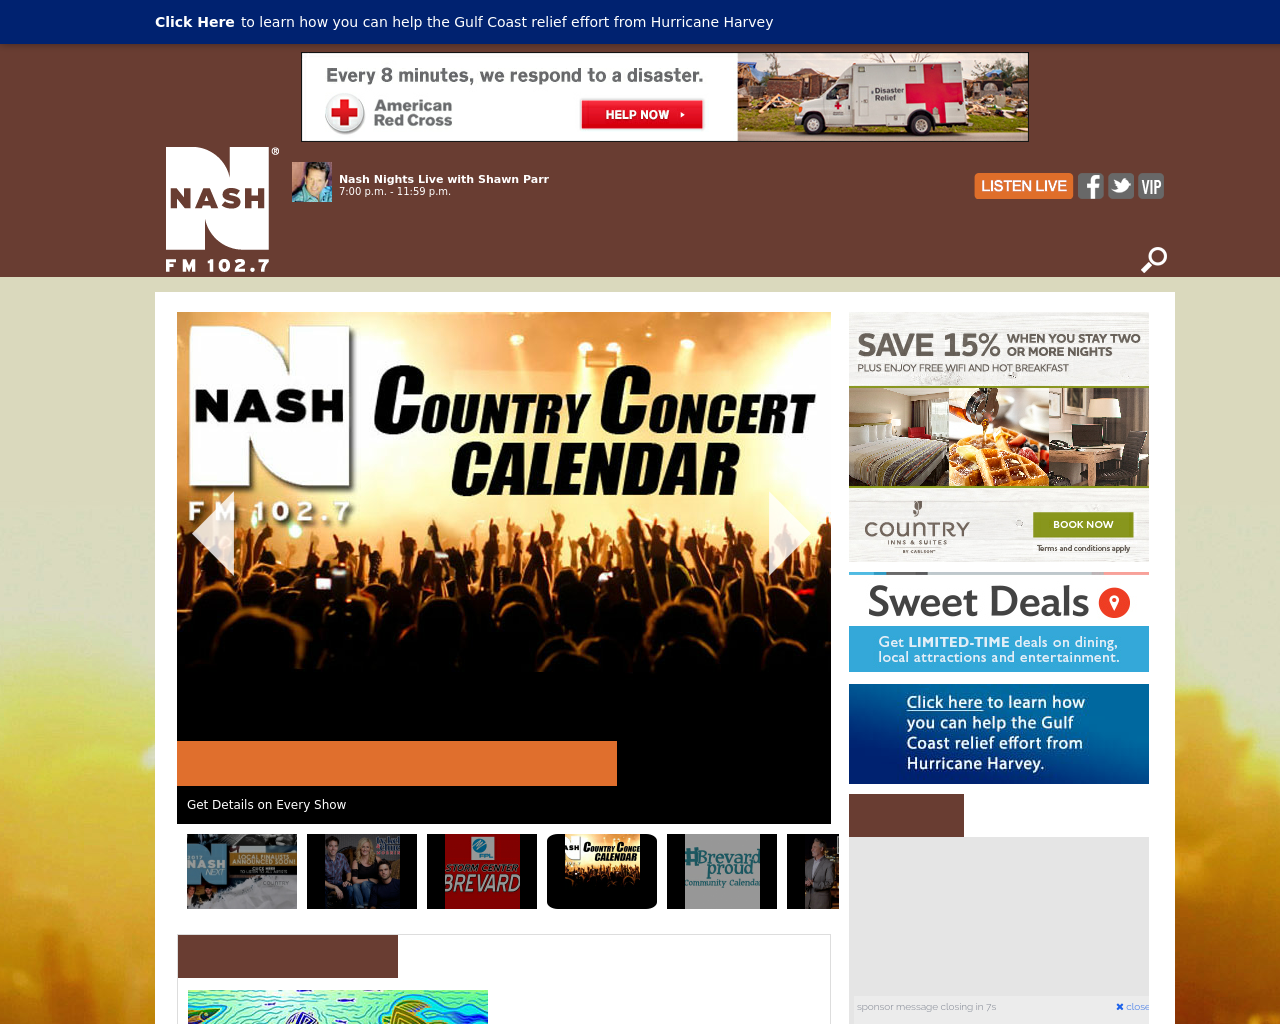 NASH-FM-102.7-Advertising-Reviews-Pricing